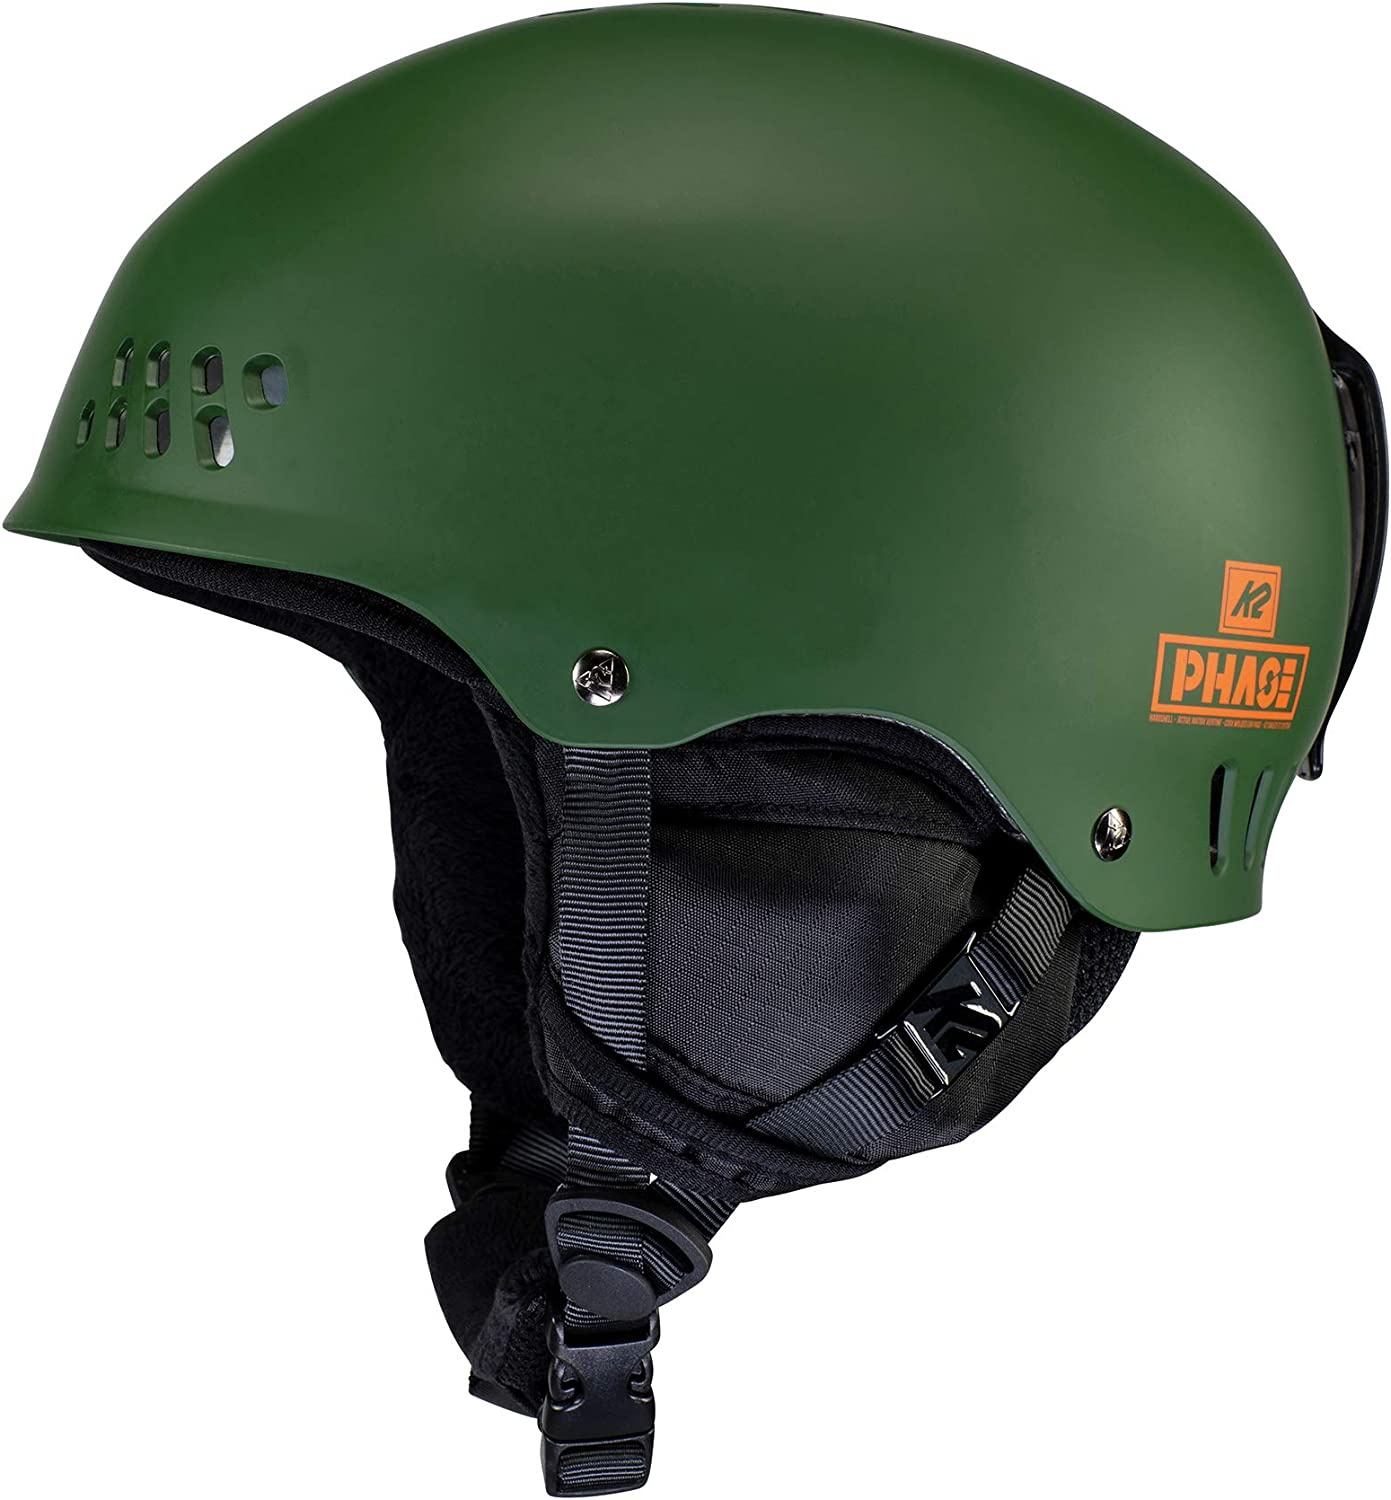 K2 Phase Pro Super-cheap Audio Helmets Medium Forest Outlet ☆ Free Shipping Green - 2021